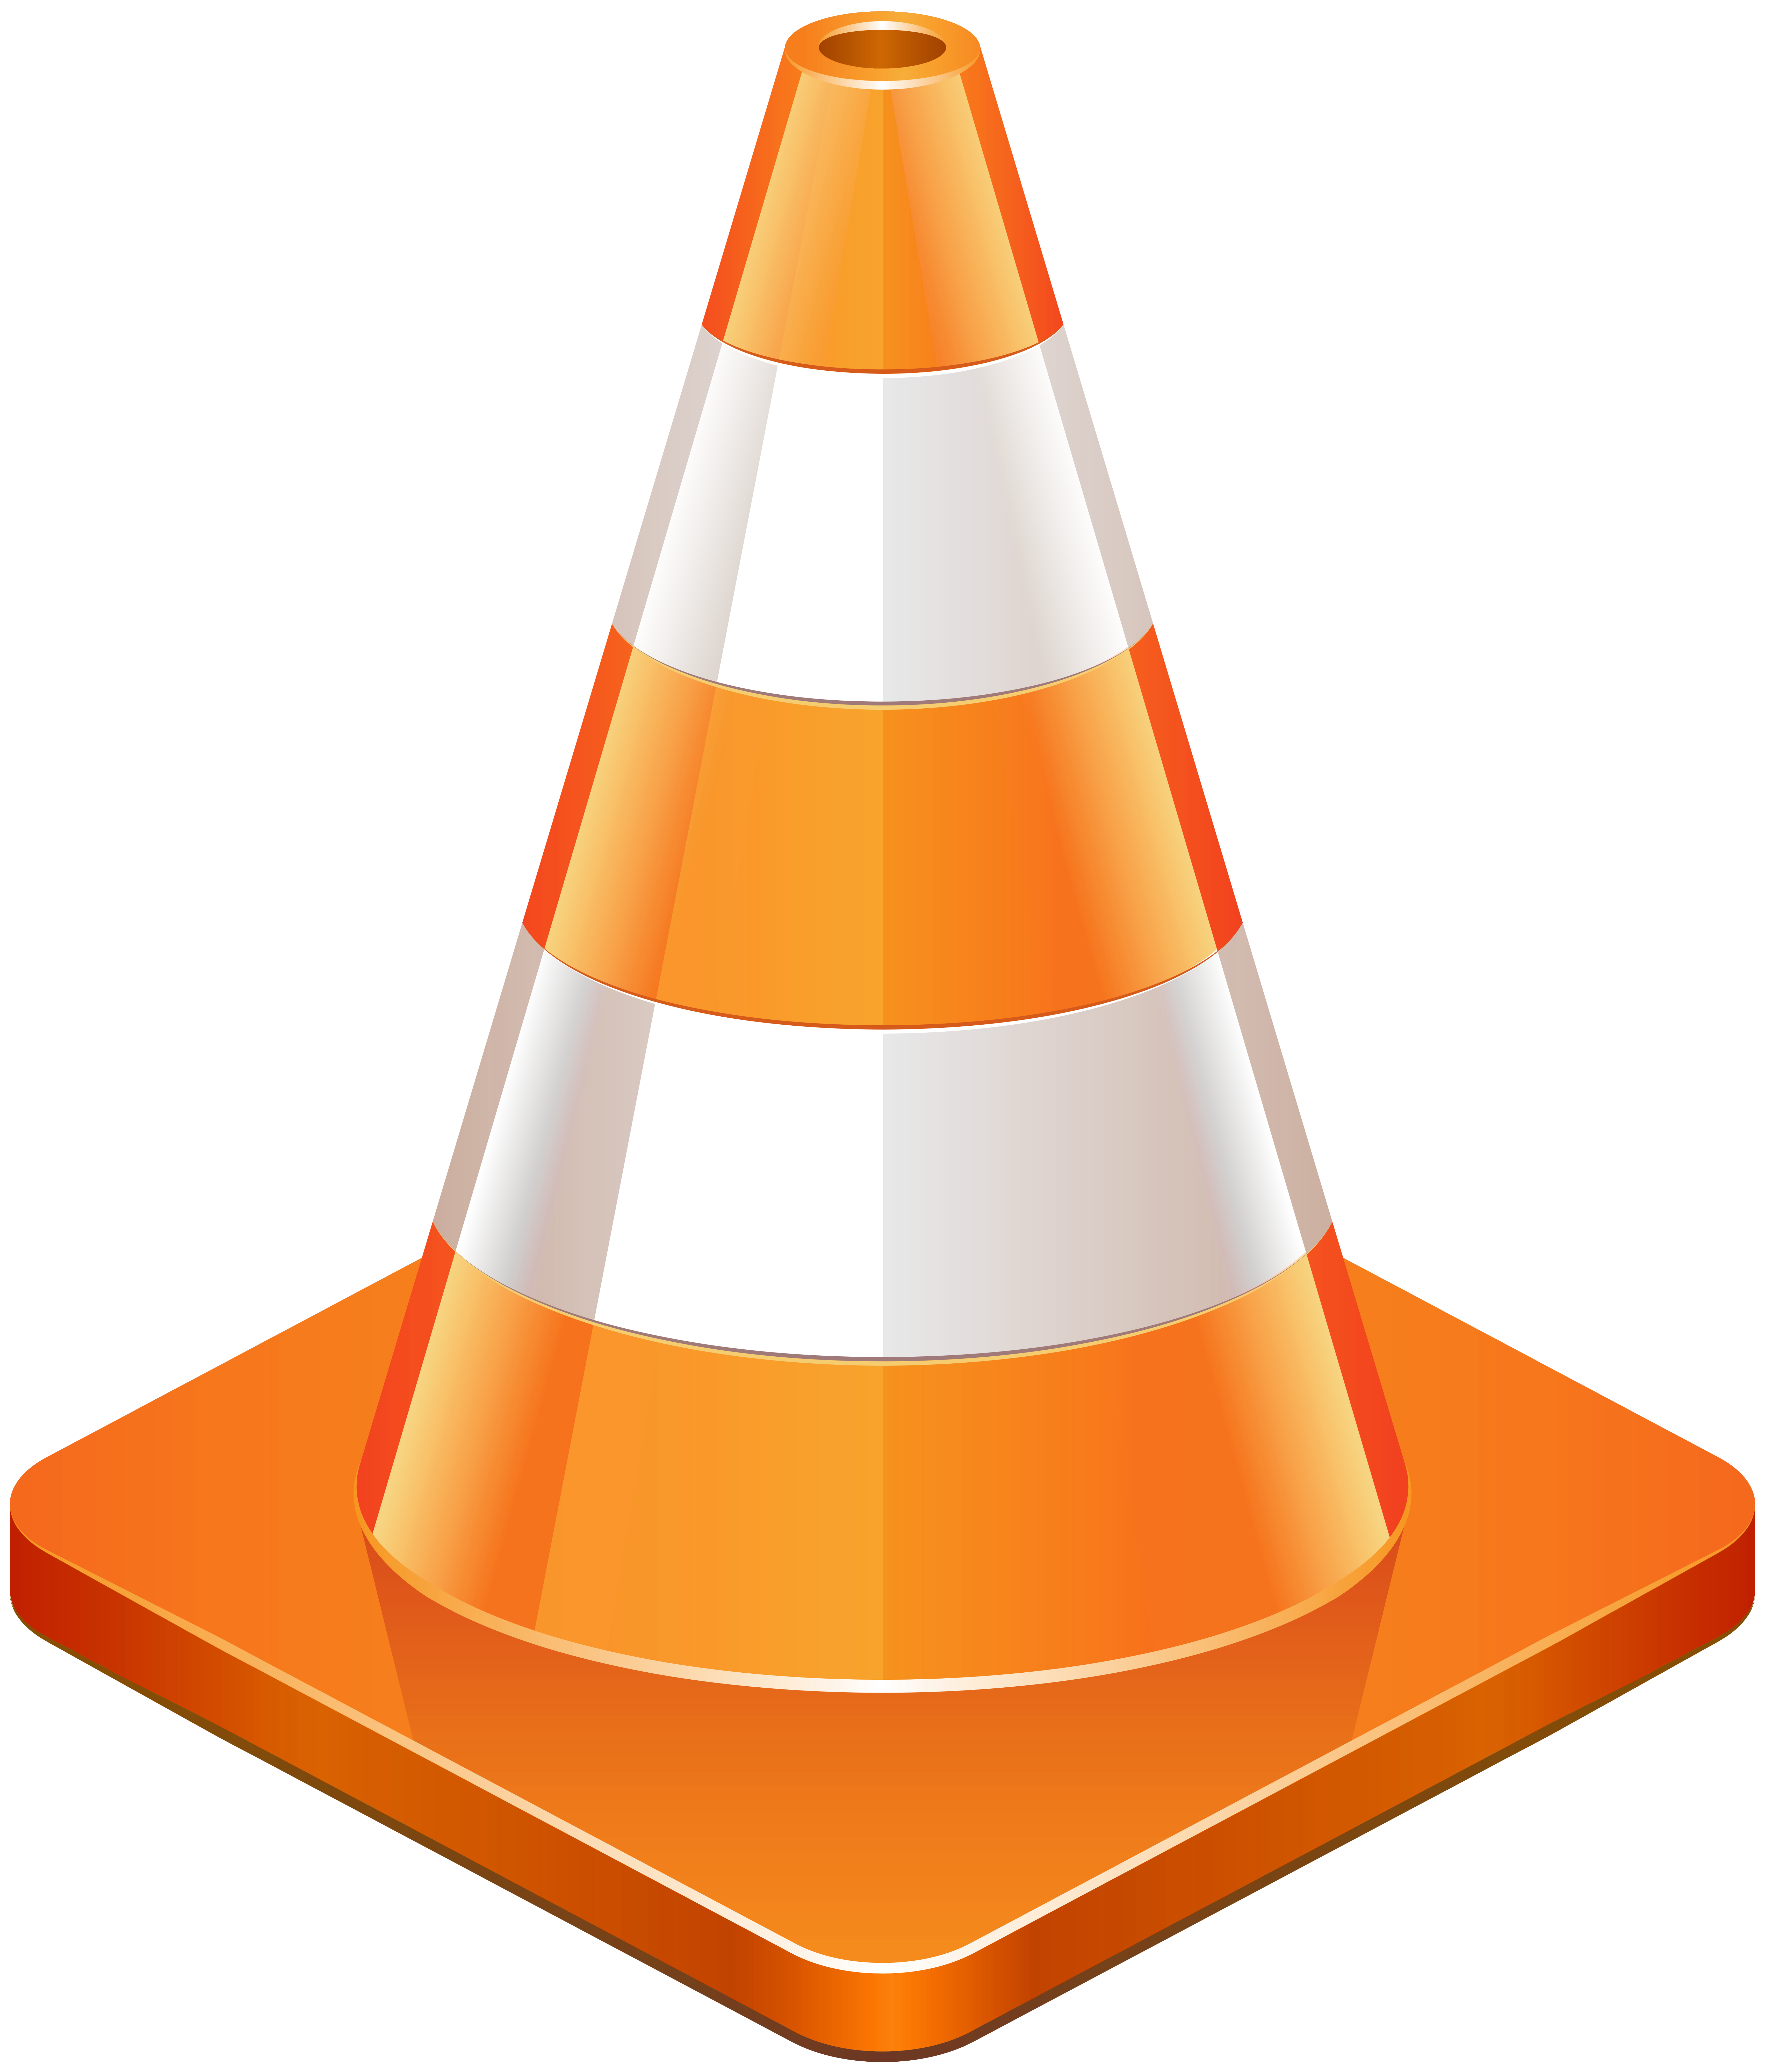 Caution cone clipart clip art freeuse stock Traffic Cone PNG Clip Art - Best WEB Clipart clip art freeuse stock